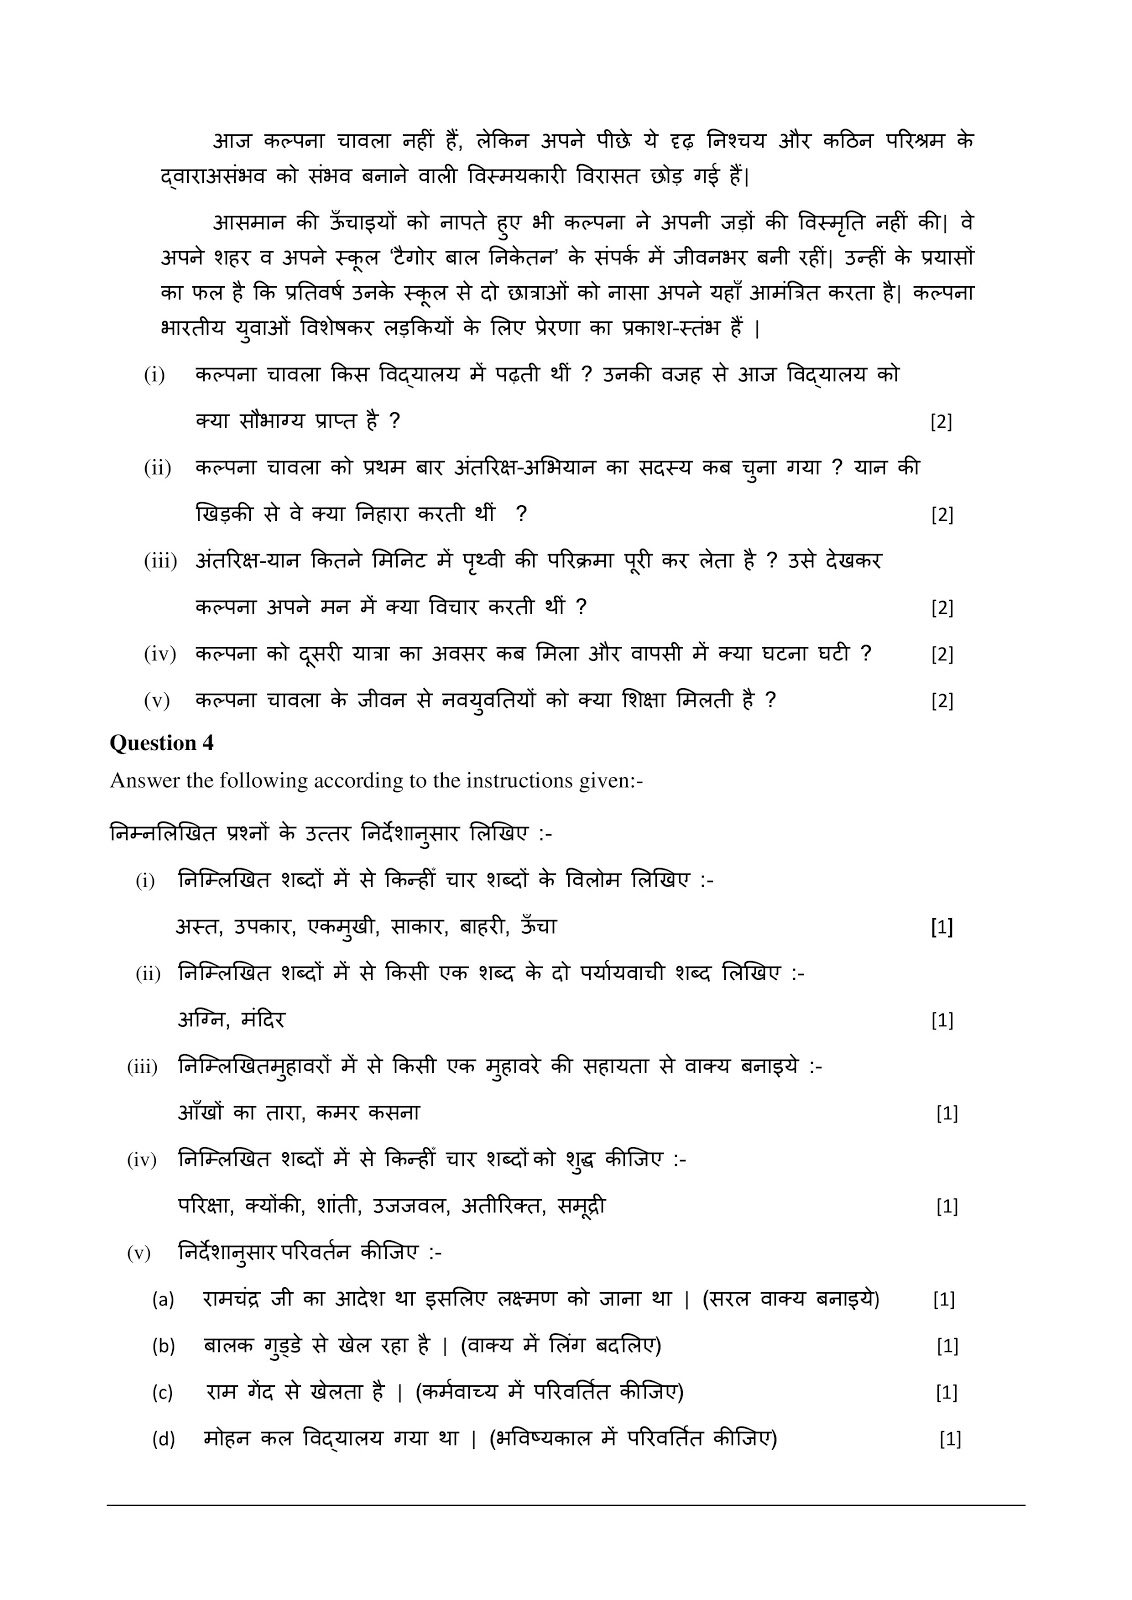 Printables Bilingual Worksheets hindi comprehension passages for class 7 icse syllabus worksheet grade 3 bilingual education